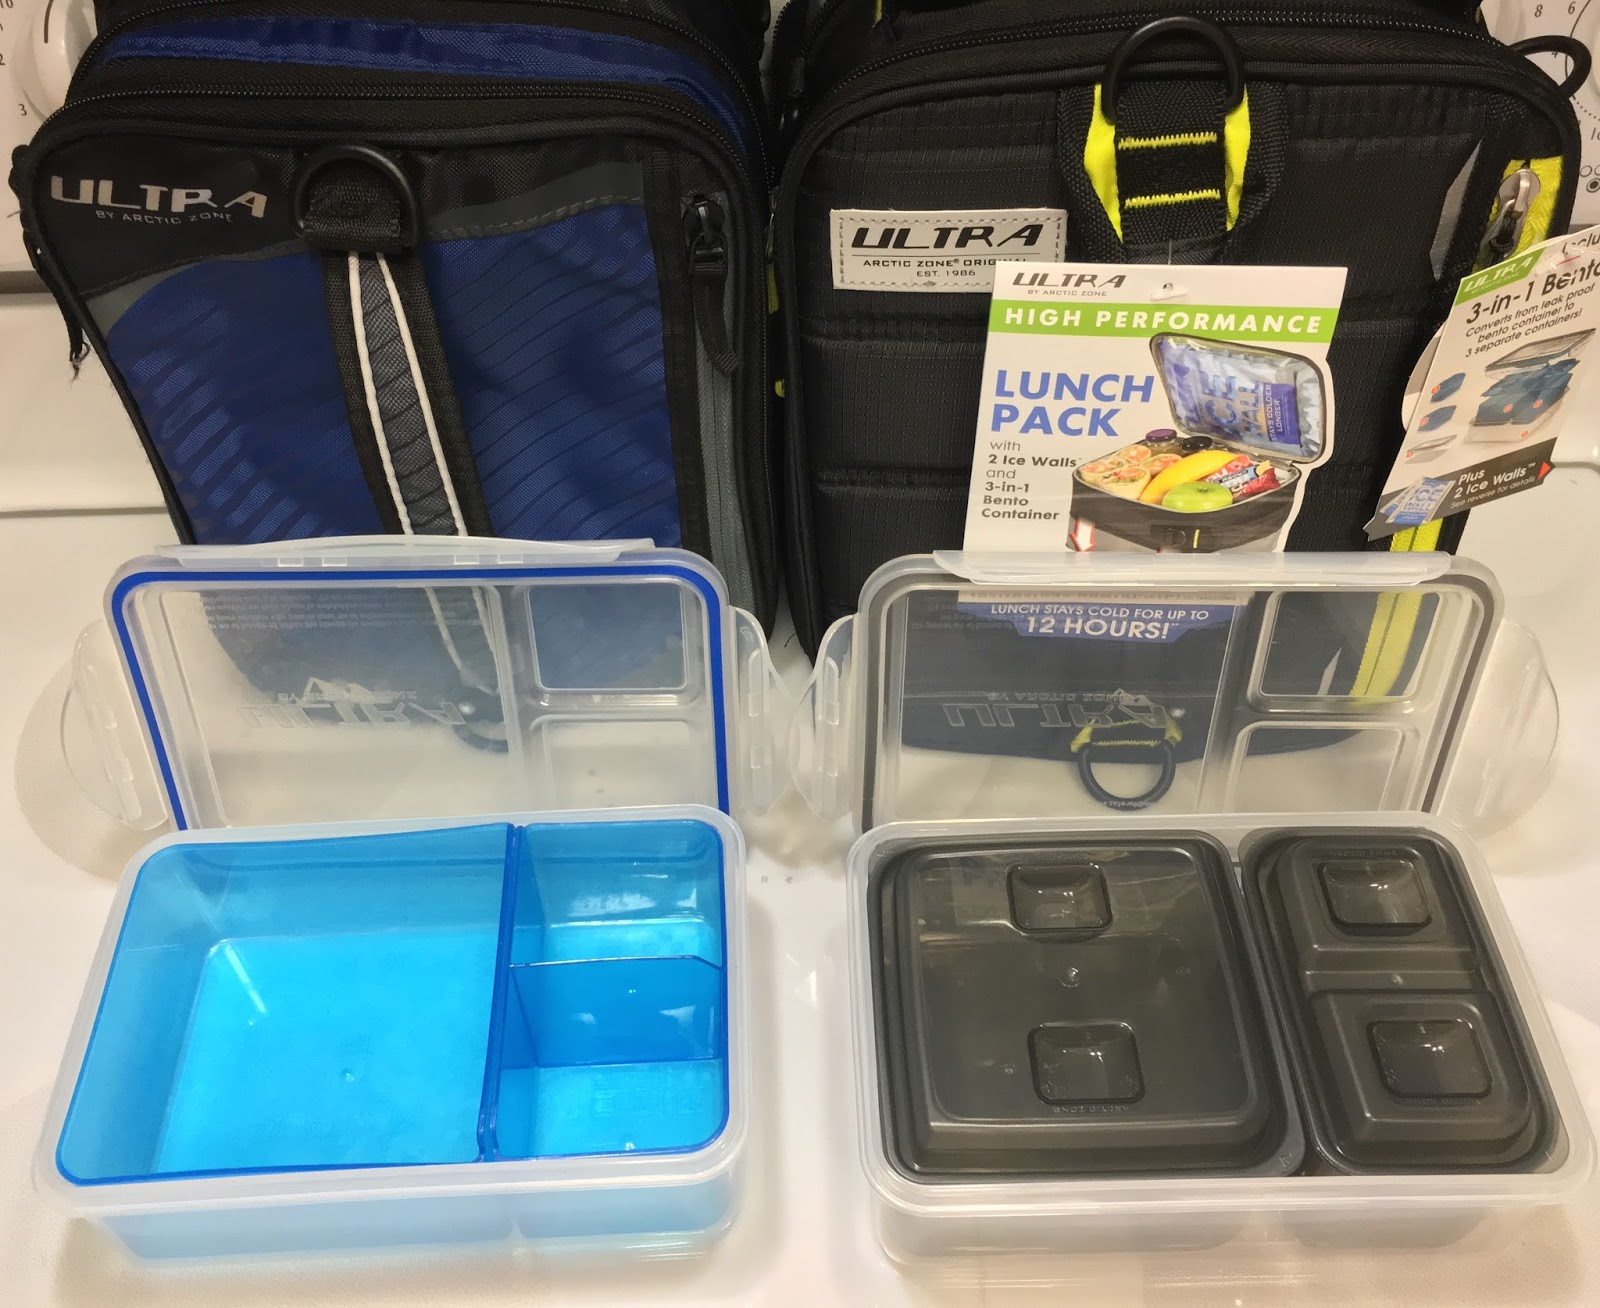 The Costco Connoisseur Insulated Lunch Packs At Costco